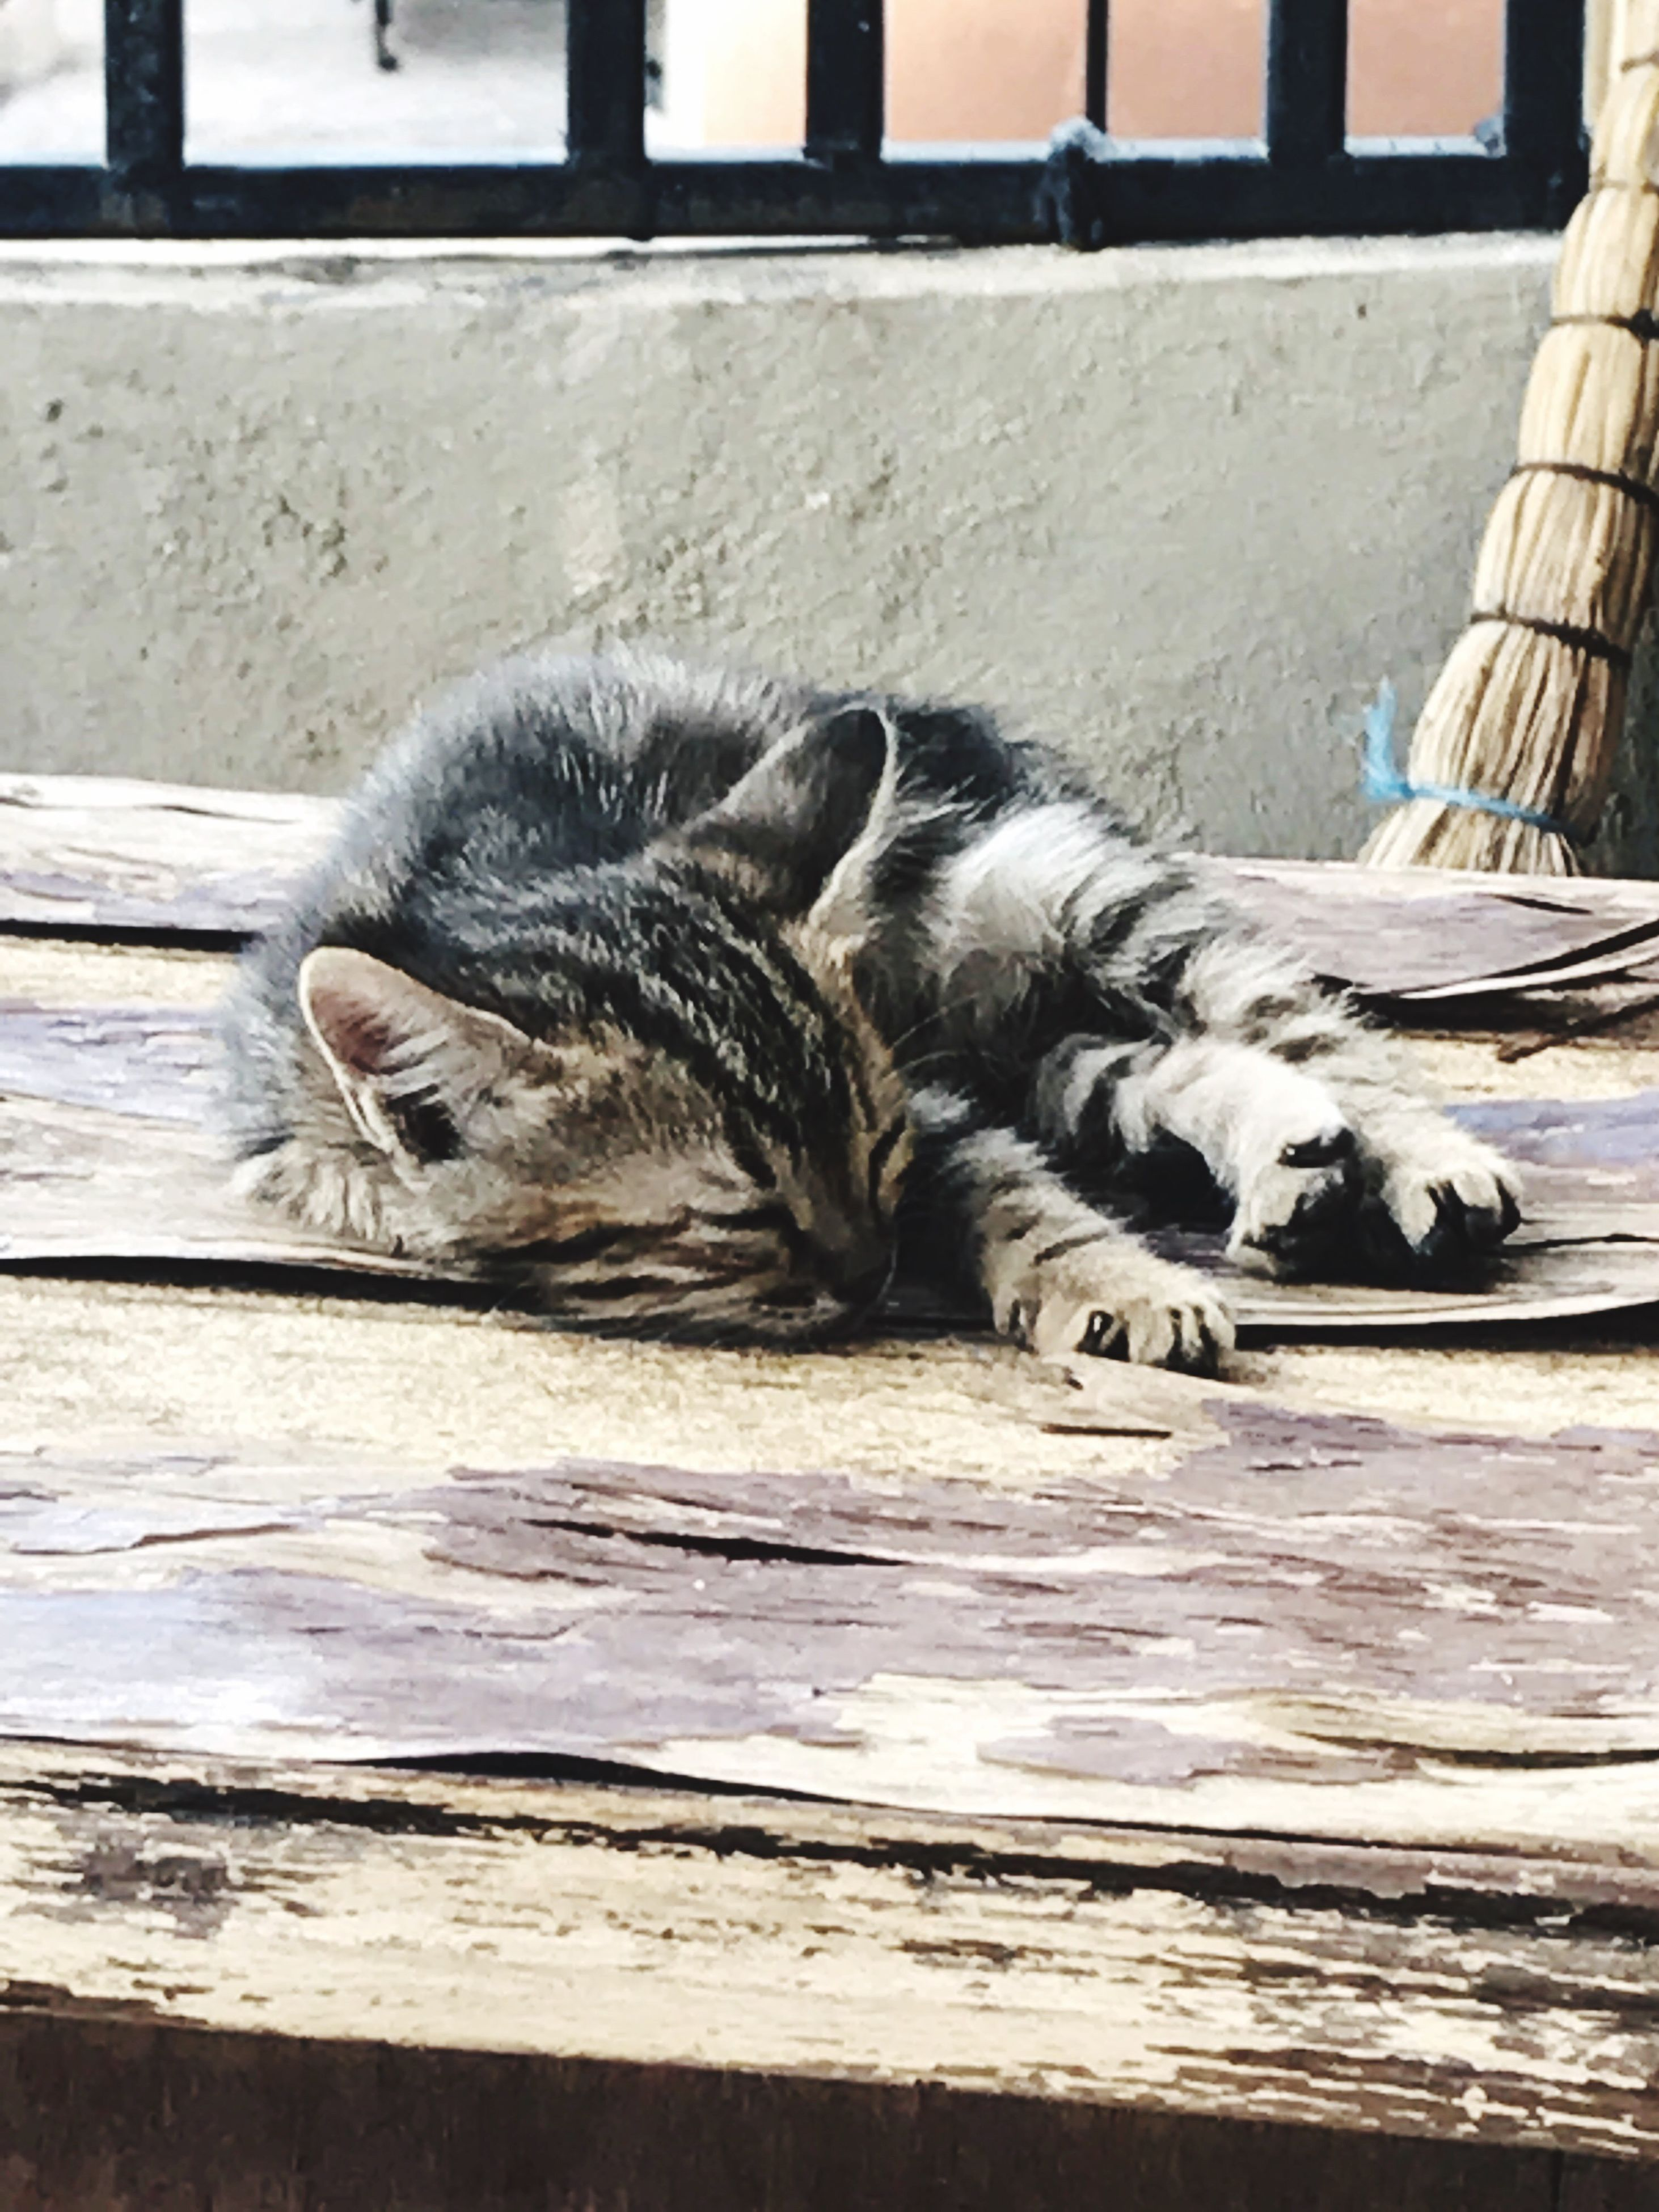 animal themes, domestic cat, one animal, domestic animals, feline, mammal, pets, sleeping, day, no people, relaxation, outdoors, close-up, nature